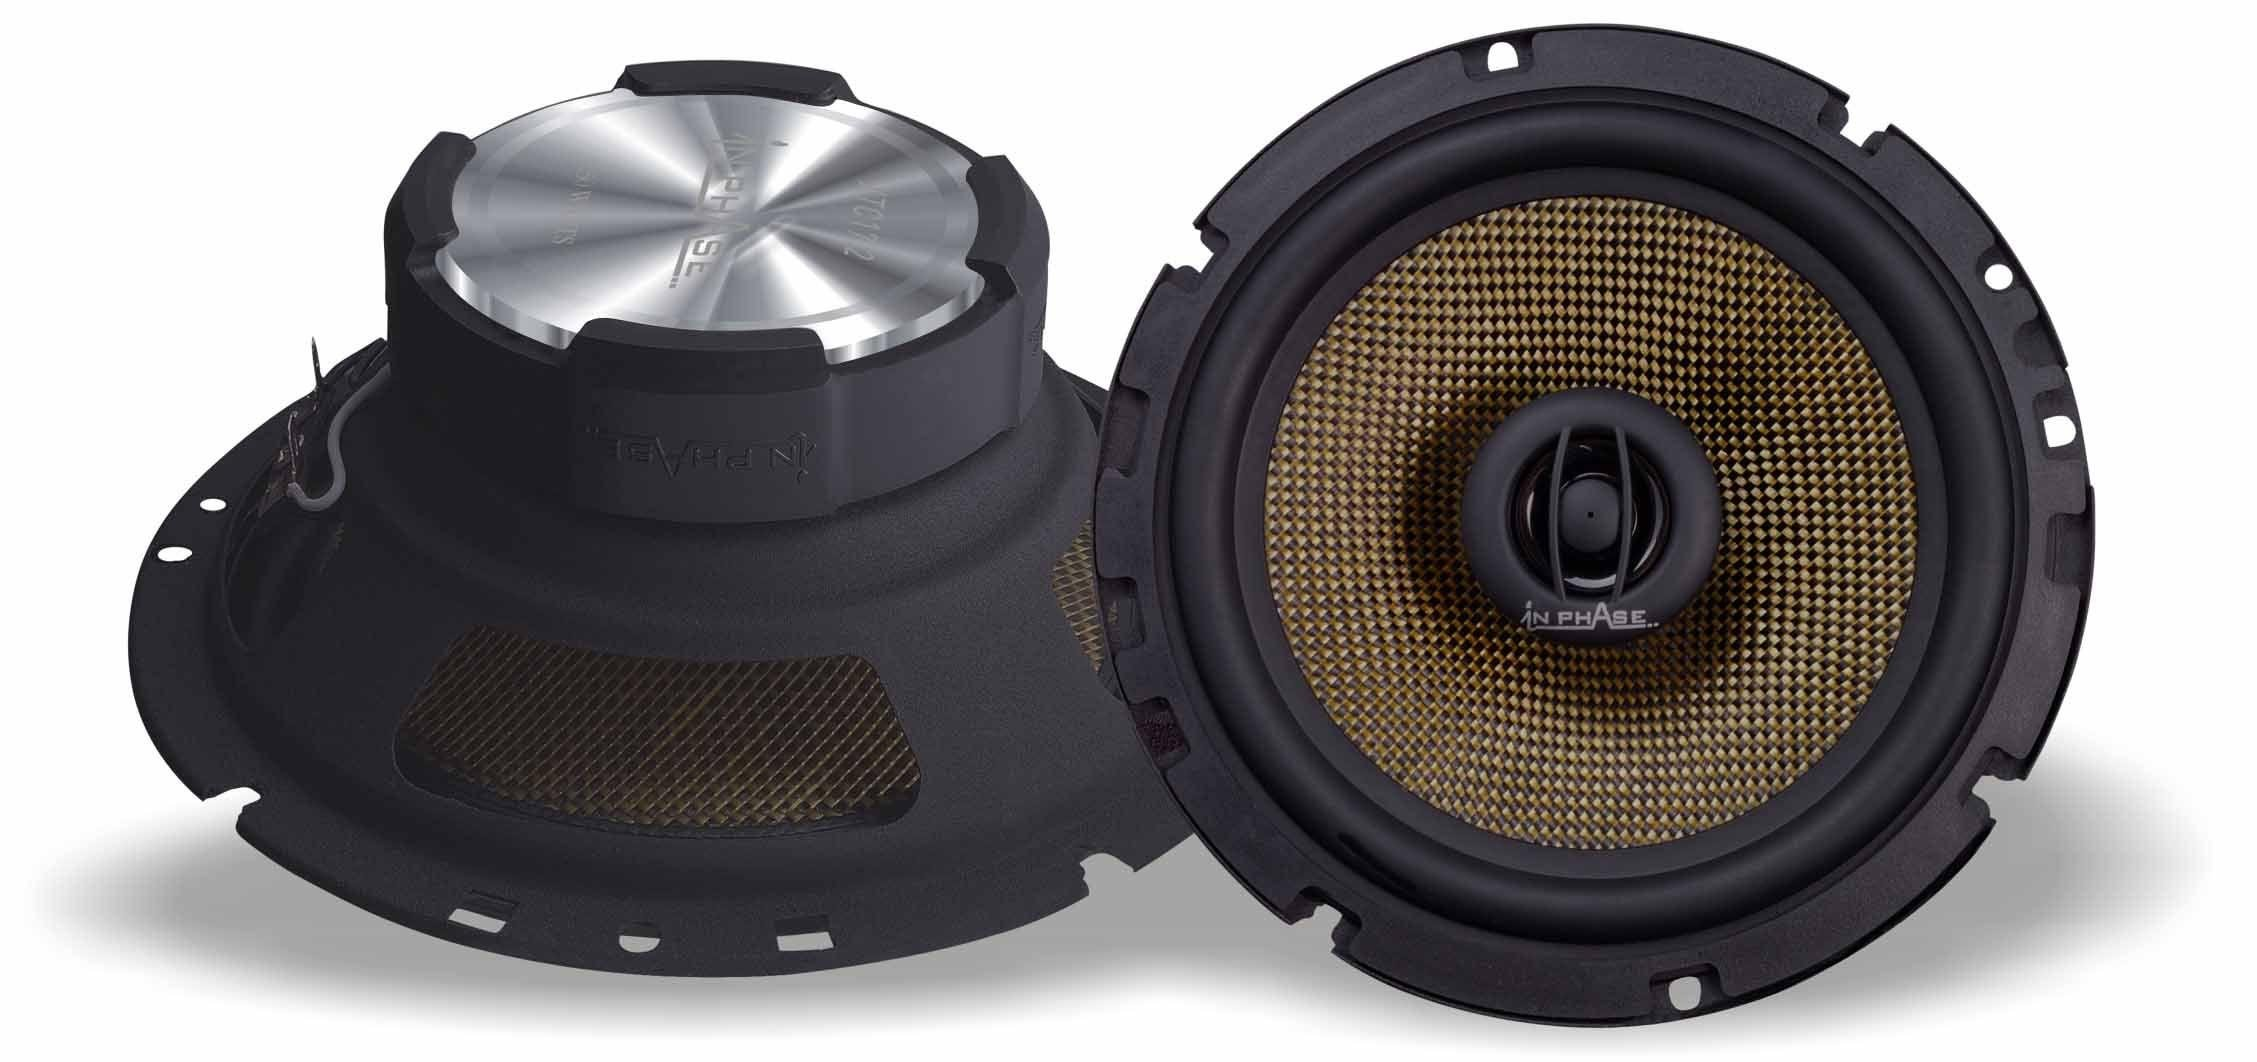 in-phase-xtc172-6-inch-2-way-multi-directional-speaker-250w